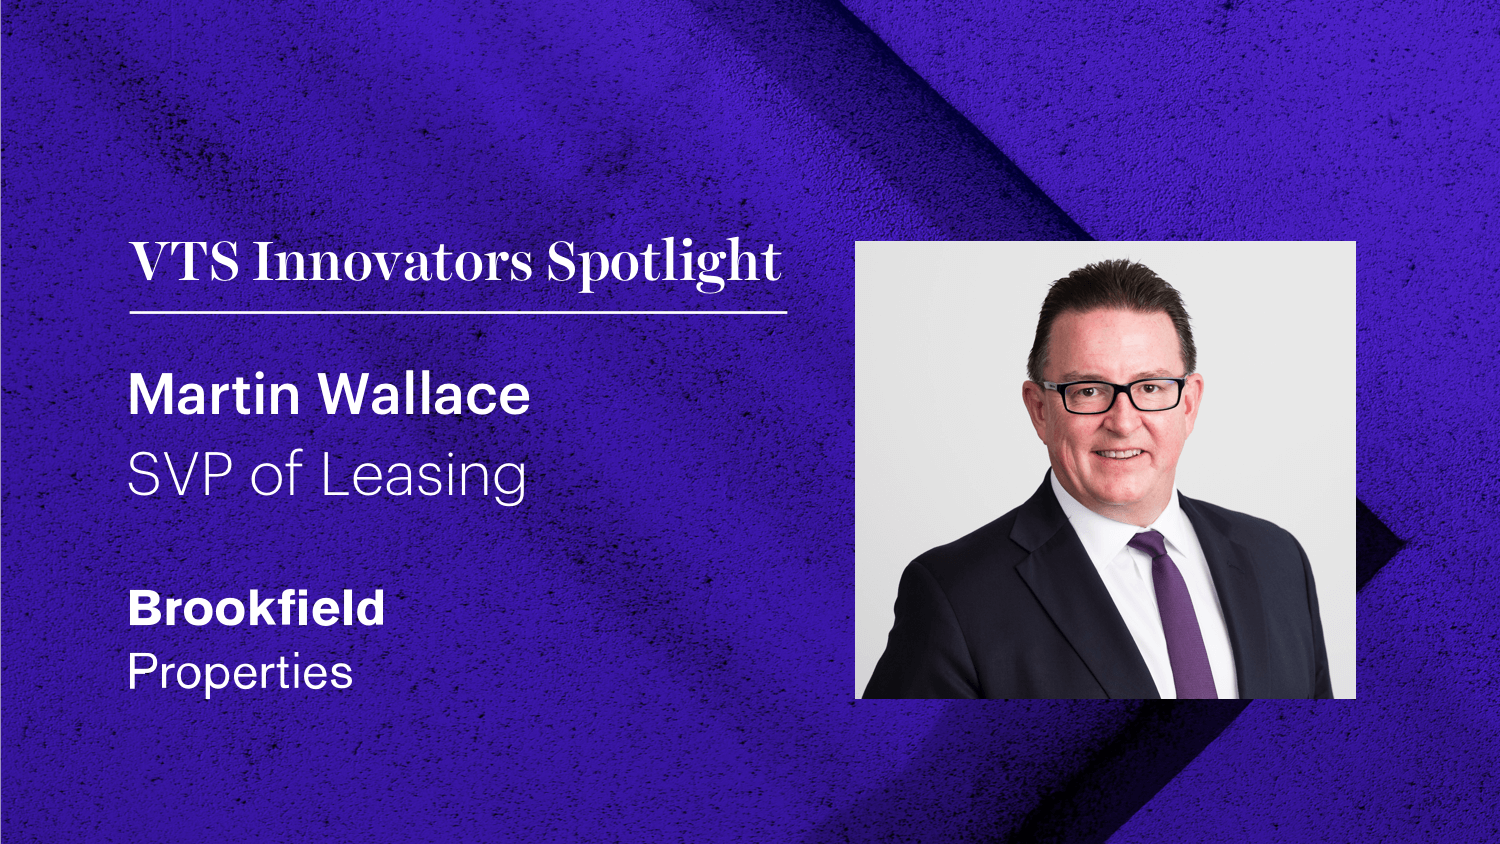 Brookfield UK's SVP of Leasing Martin Wallace on How Real-Time Data and Technology Helps Build a Better Tenant Experience